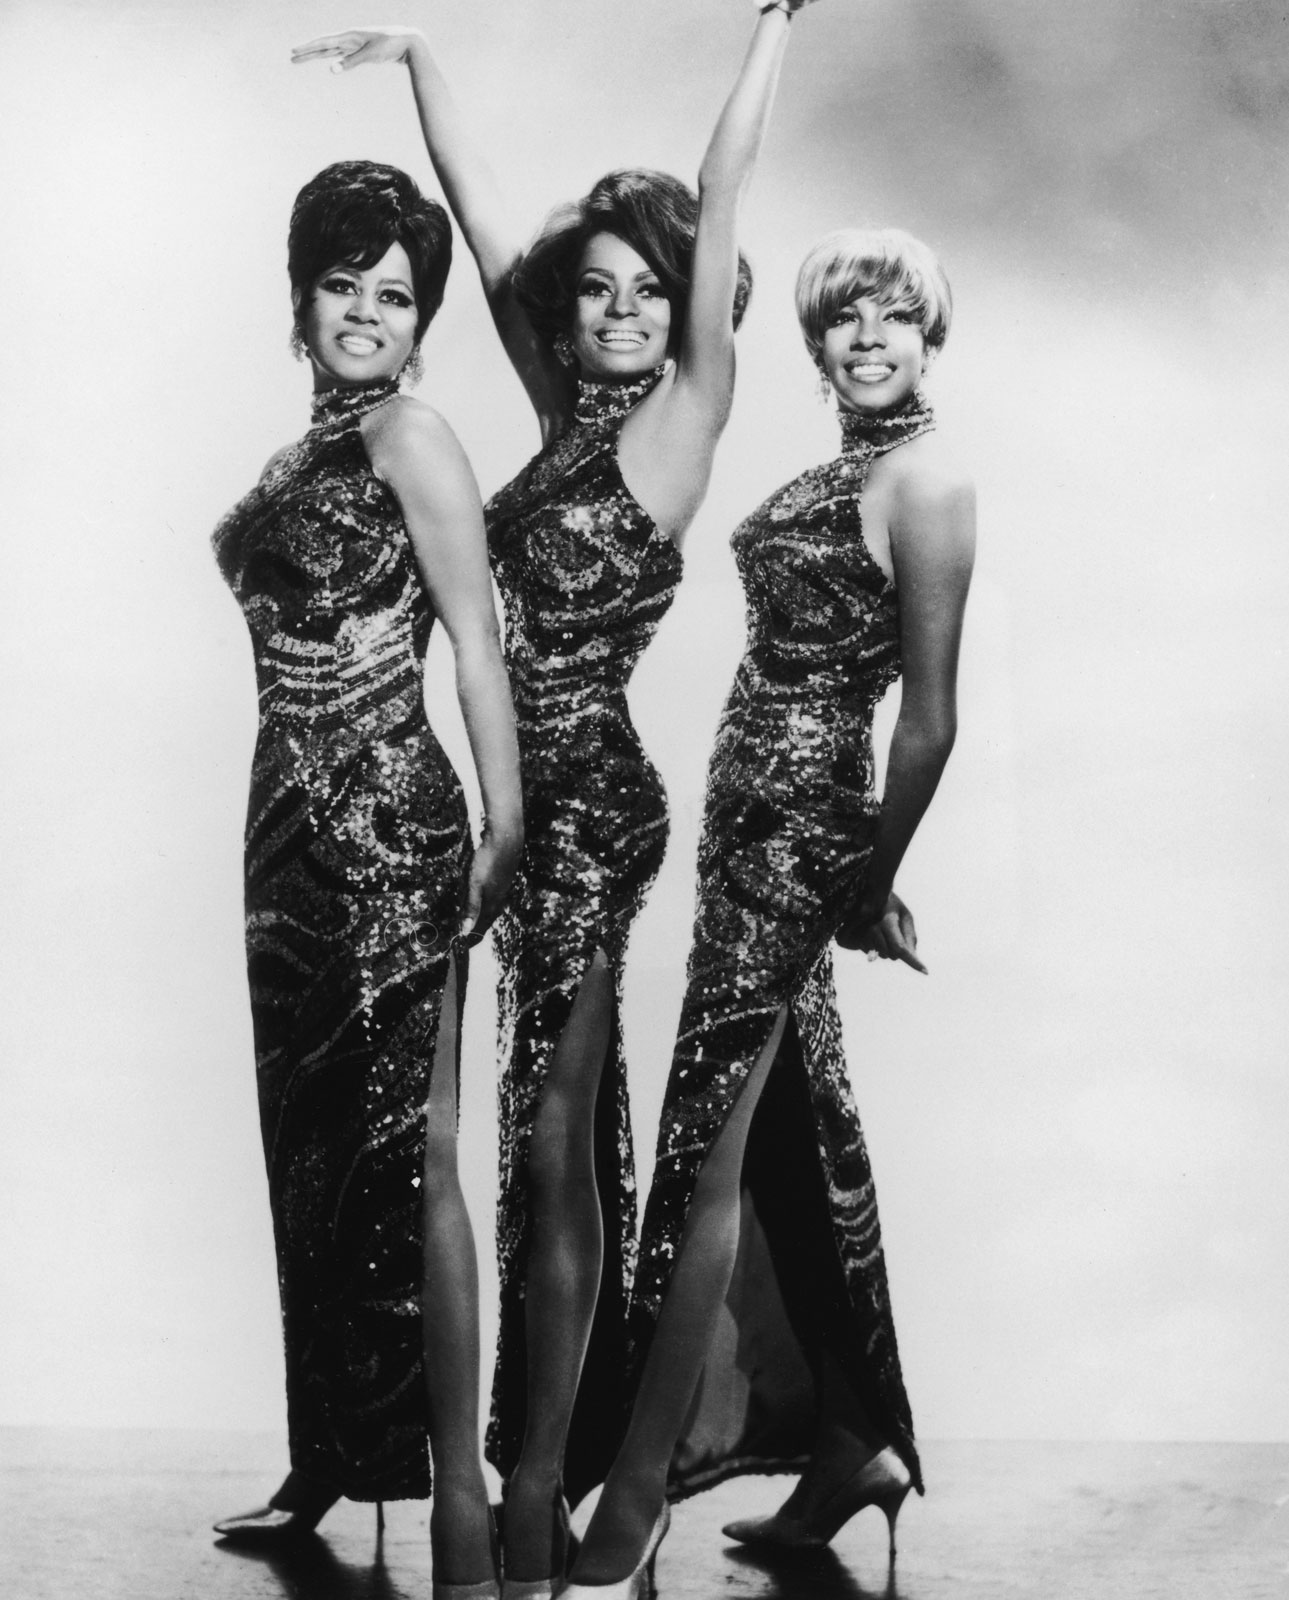 twoday.net > sixties > music > The Supremes